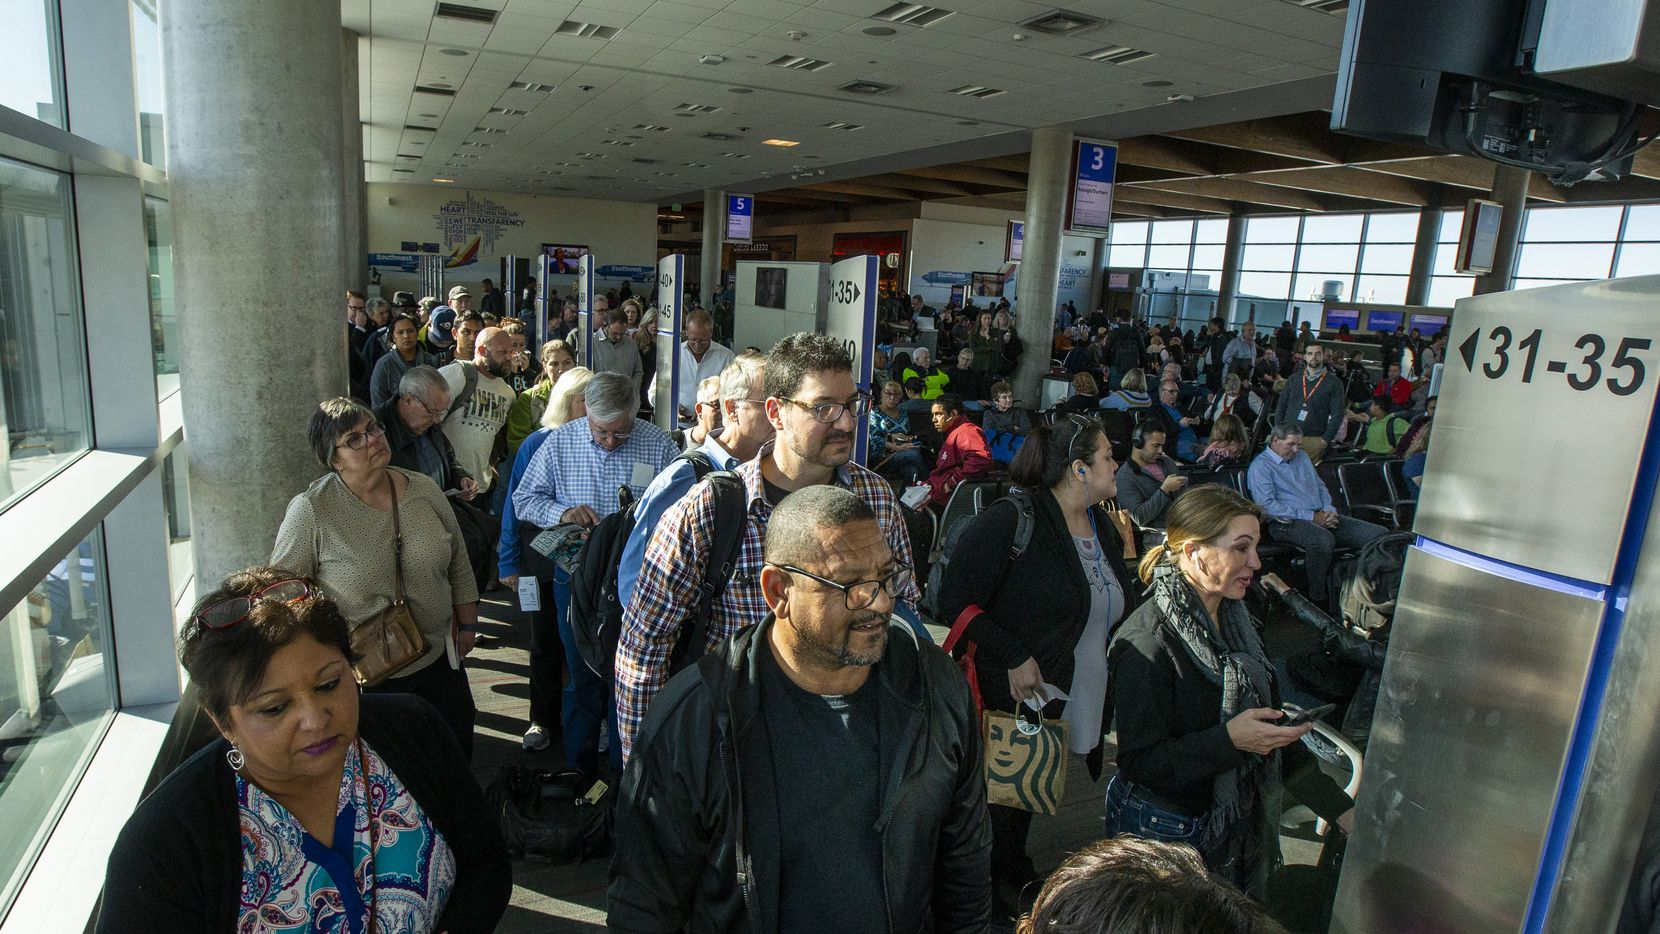 Travelers line up to board a flight at the Dallas Love Field airport on Thursday, Nov. 14, 2019. (Lynda M. Gonzalez/The Dallas Morning News)